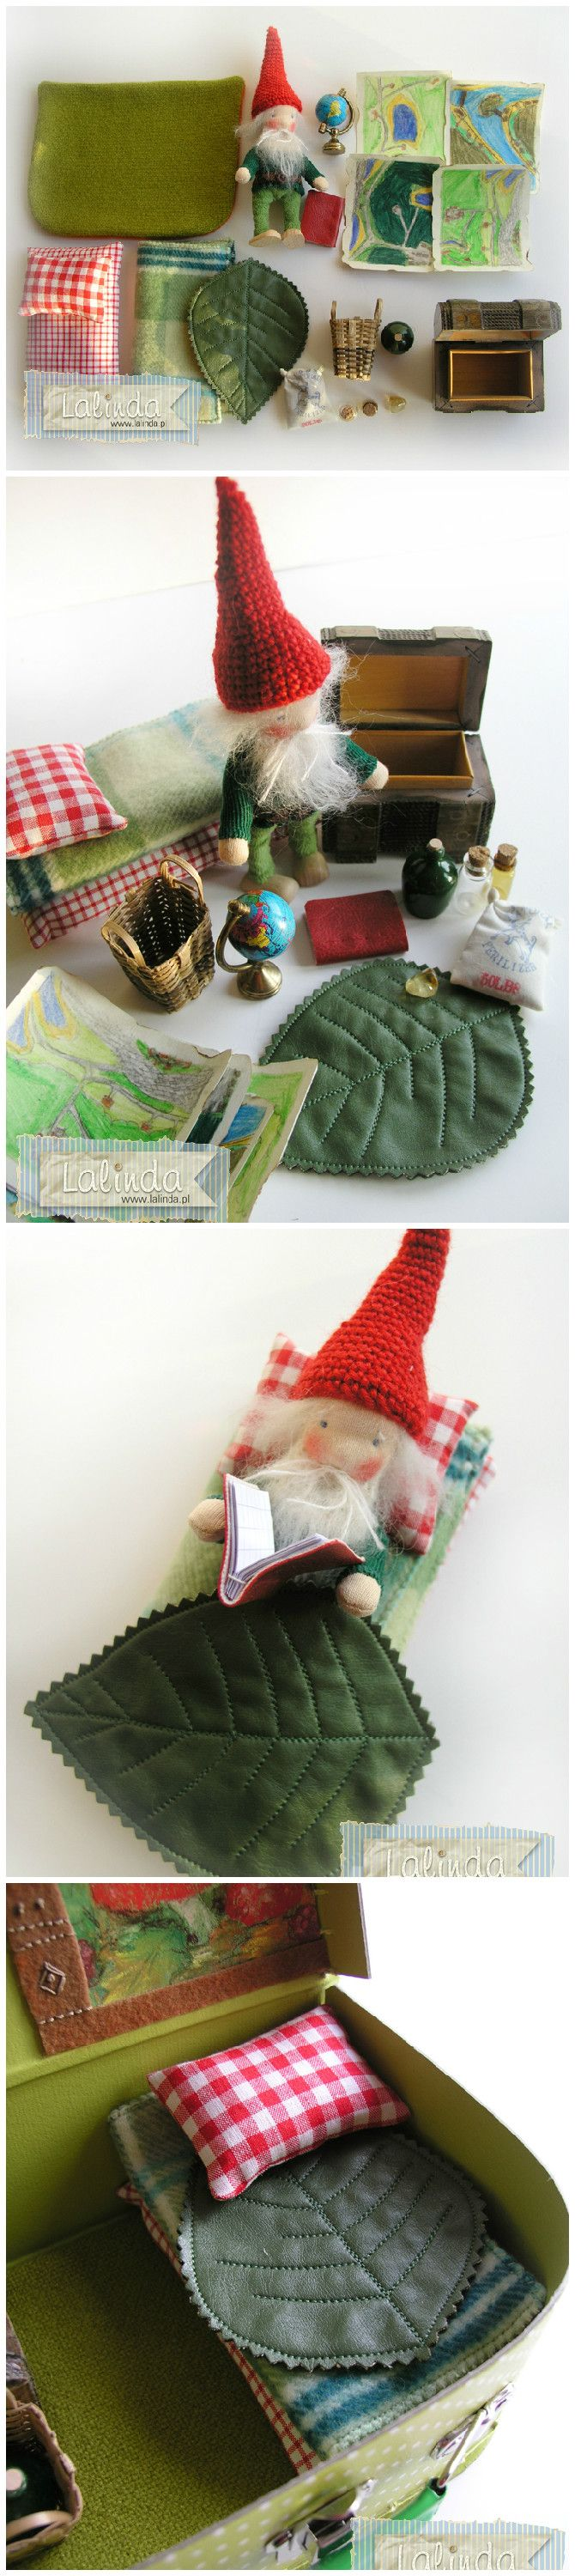 a gnome's home play set with bed, book, globe, pictures, leaf blanket! beautiful! Lalinda mini play set